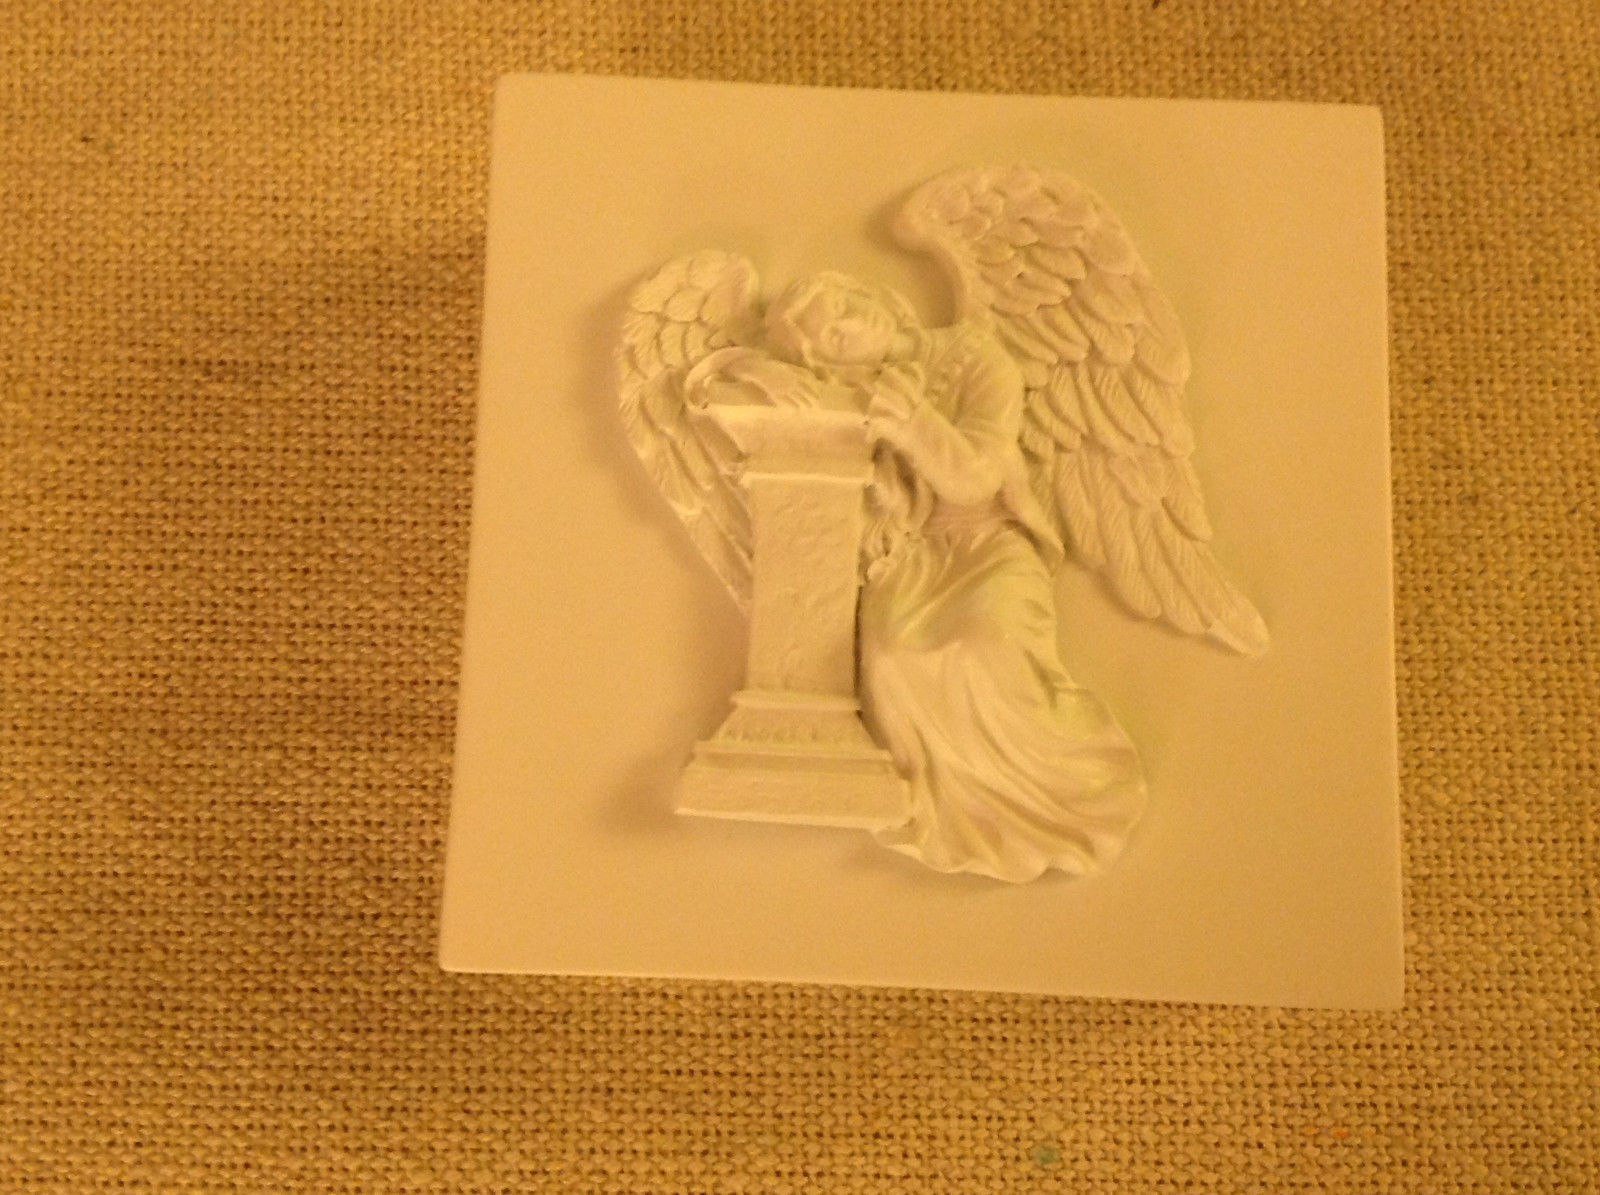 Primary image for Angel trinket box  with angel resting head on pillar cream colored